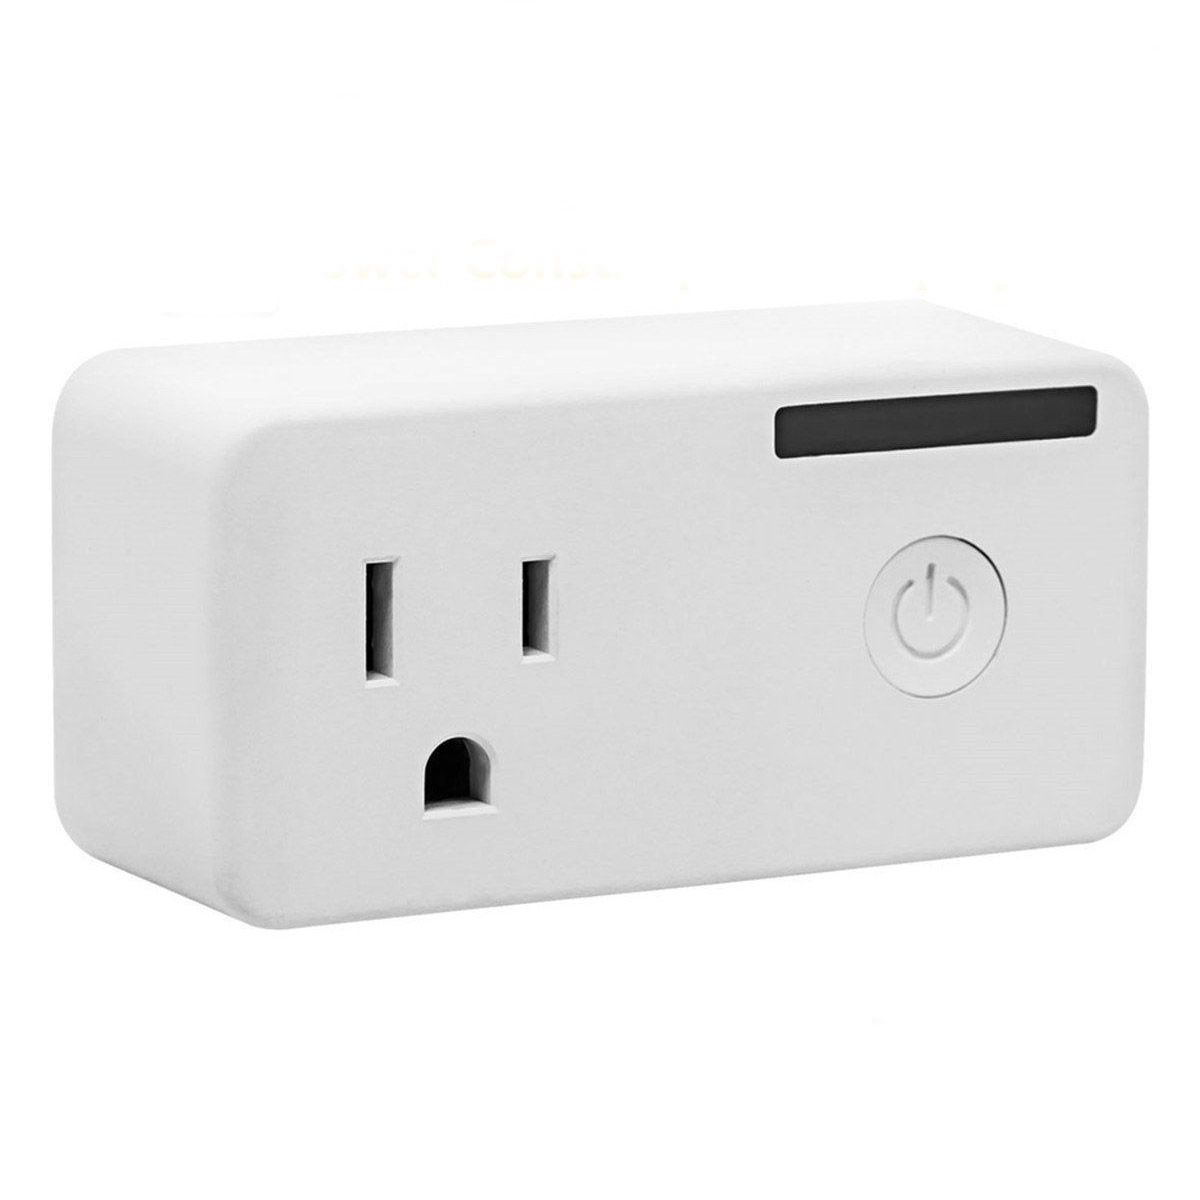 Mini Wifi Timing Function US Plug Works with Google Home Alexa Smart Switch, Remote Control Devices Anywhere with Electricity ...